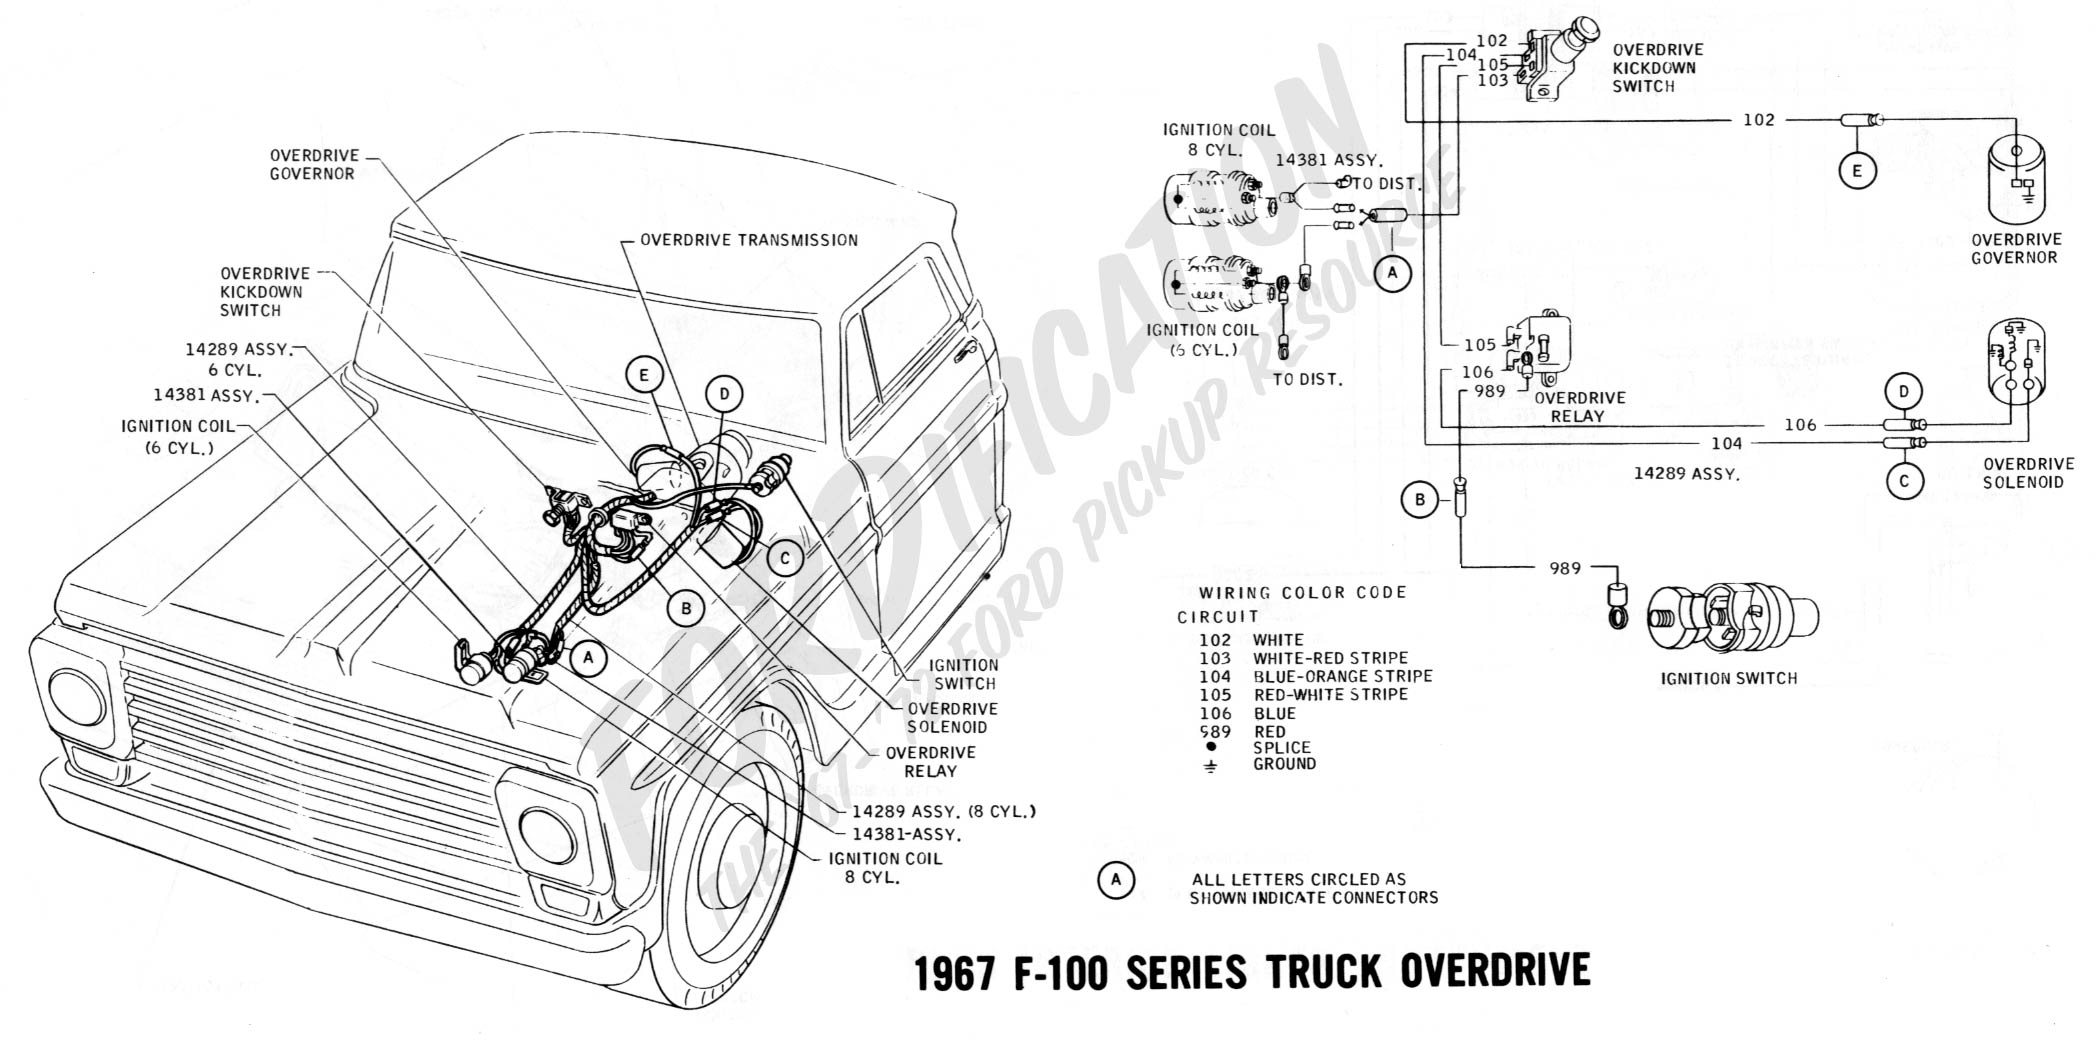 1968 ford f 250 wiring diagram easy wiring diagrams u2022 rh art isere com